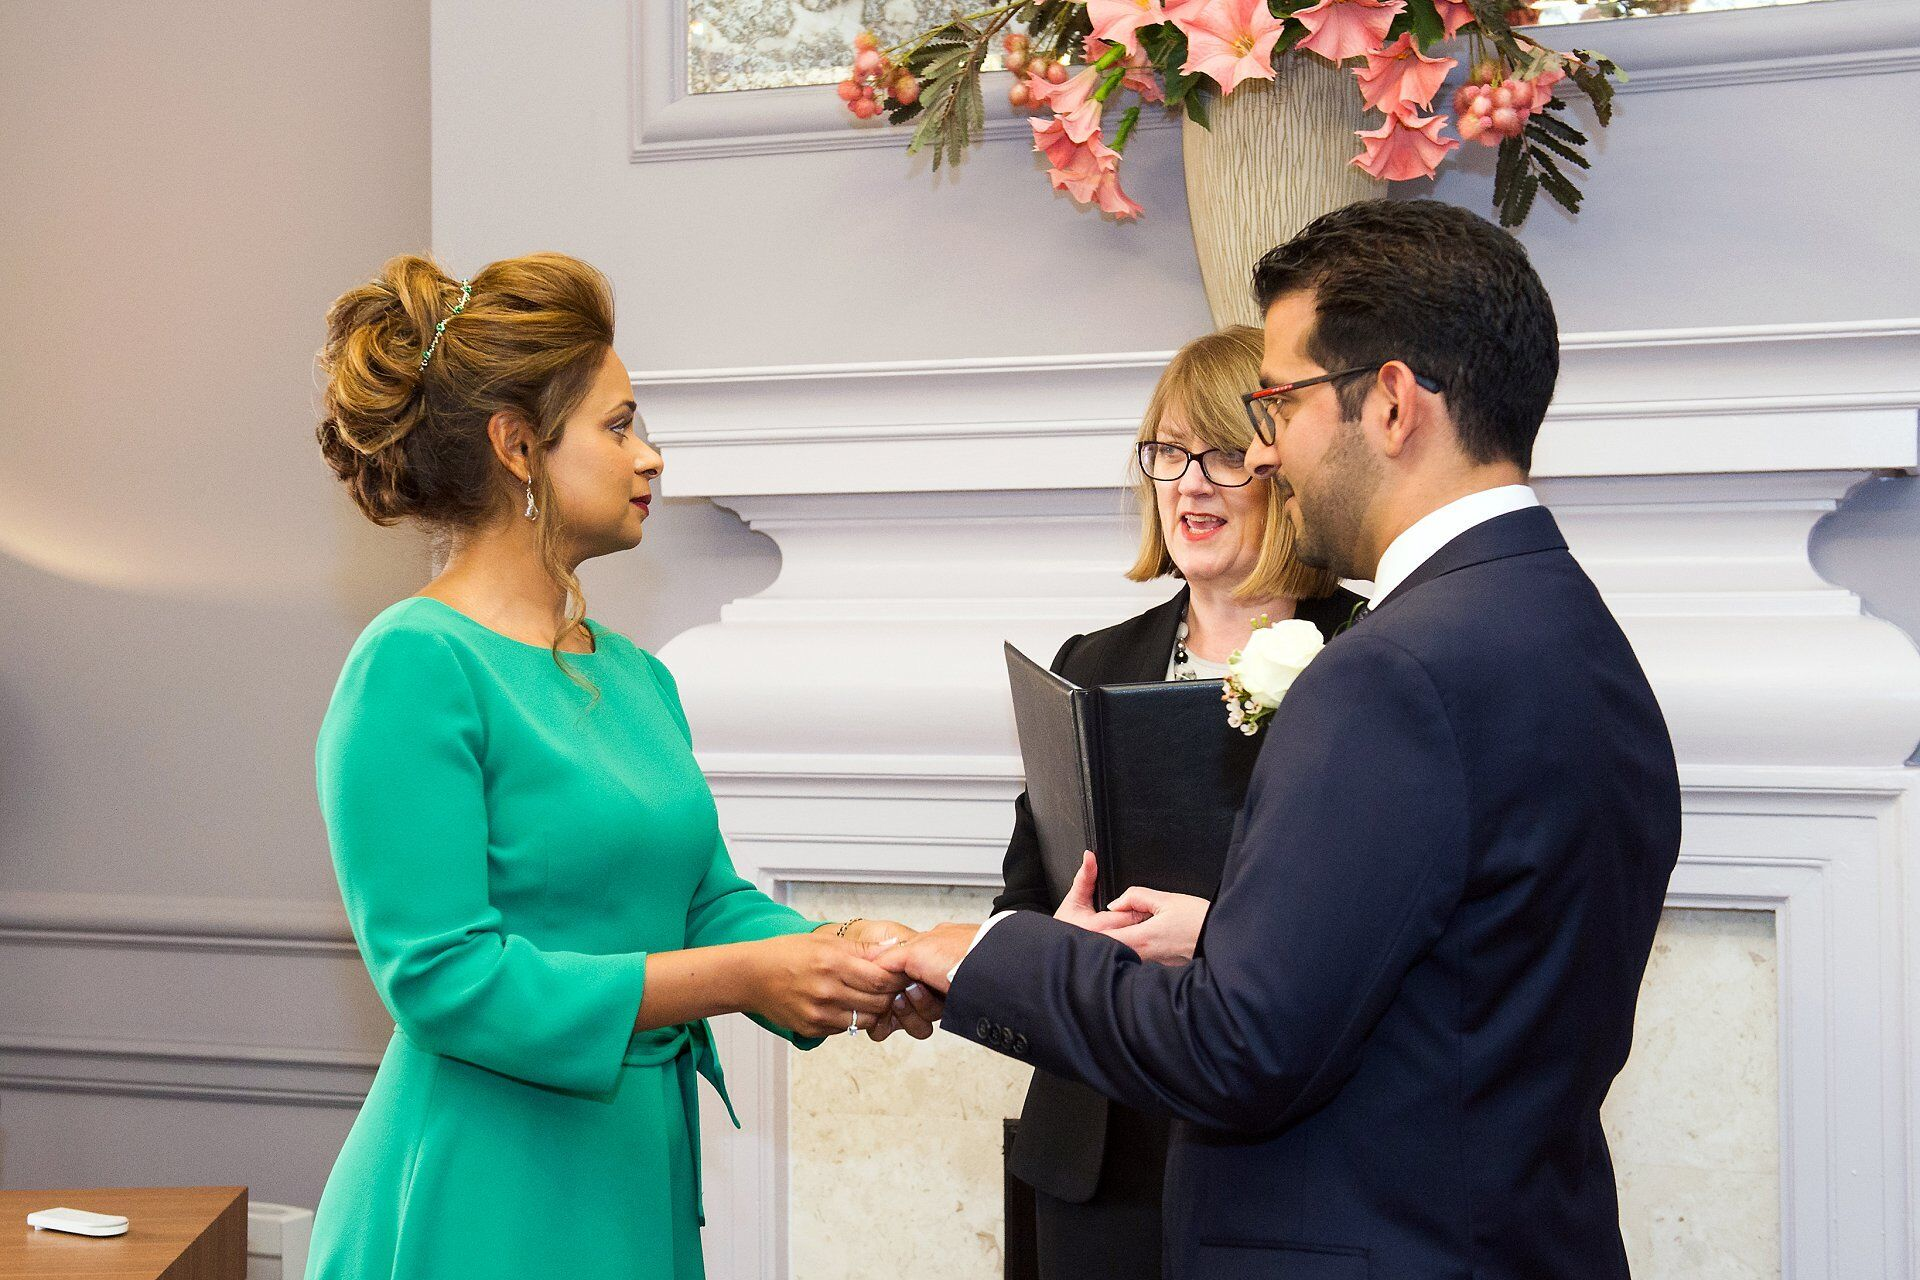 bride places ring on her partners finger westminster register office wedding photography in the knightsbridge room